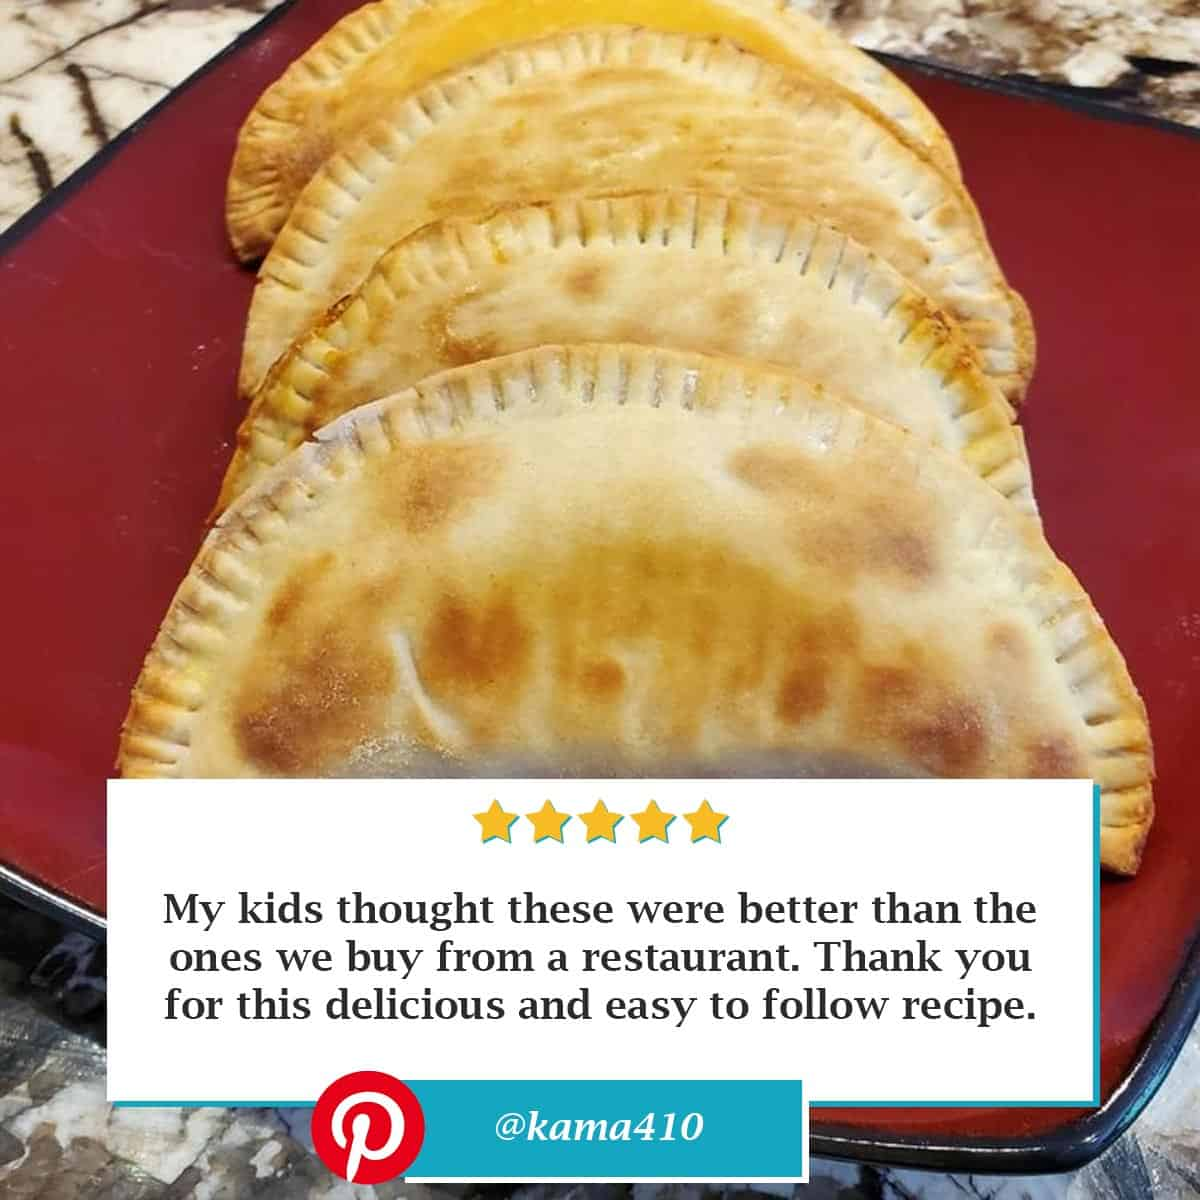 "Reviewer photo of the Puerto Rican empanadas with the comment: ""My kids thought these were better than the ones we buy from a restaurant. Thank you for this delicious and easy to follow recipe."" and their Pinterest username @kama410"